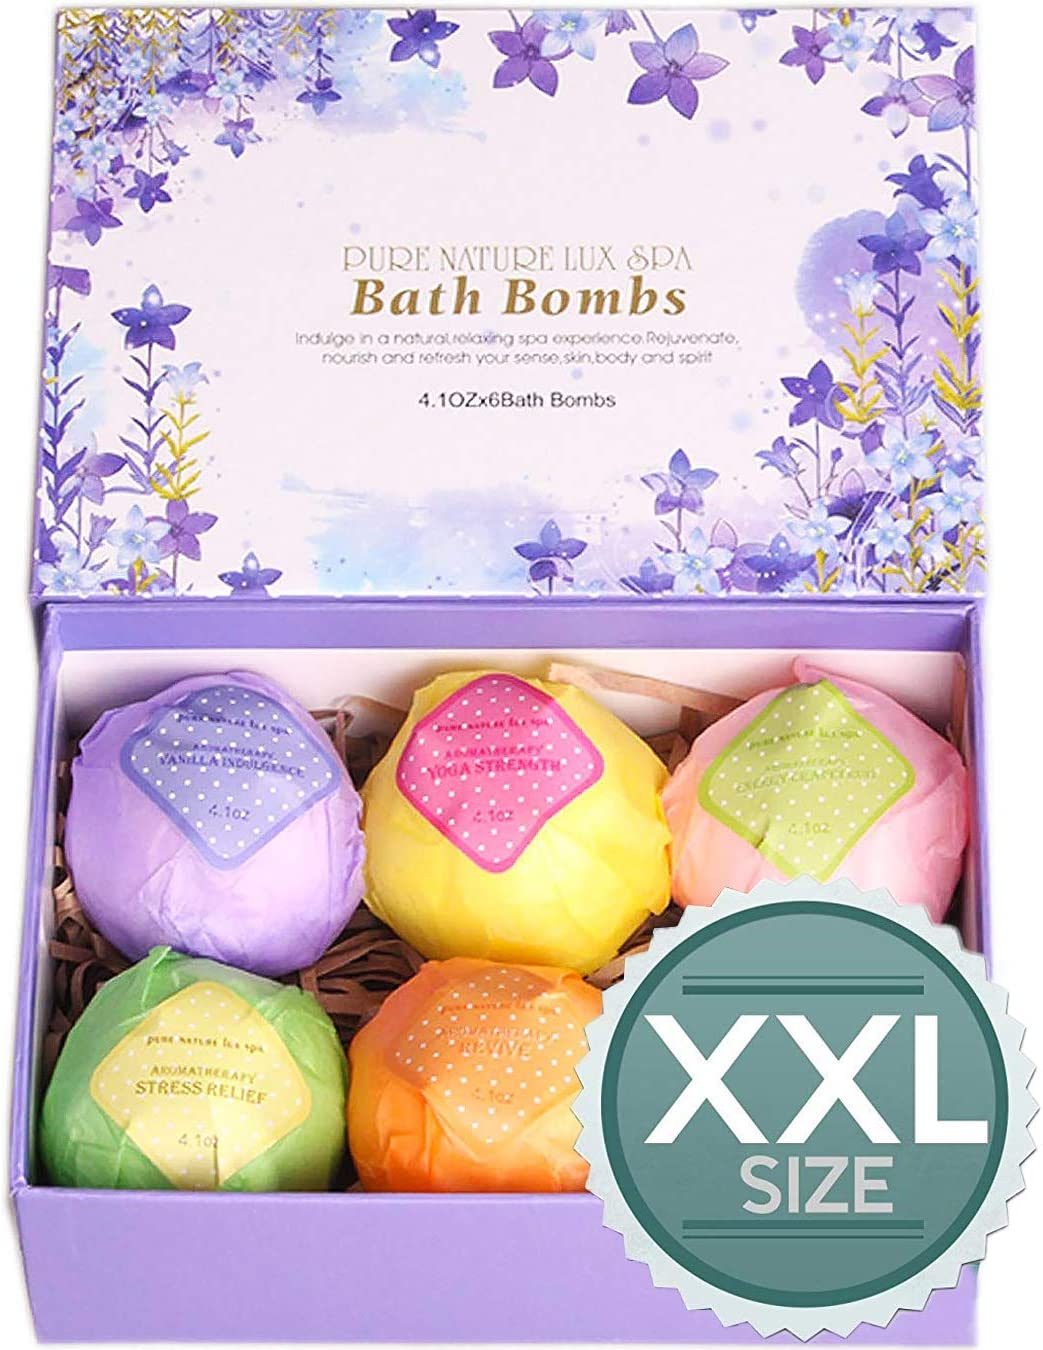 An image of a violet box containing six different color bath bombs.